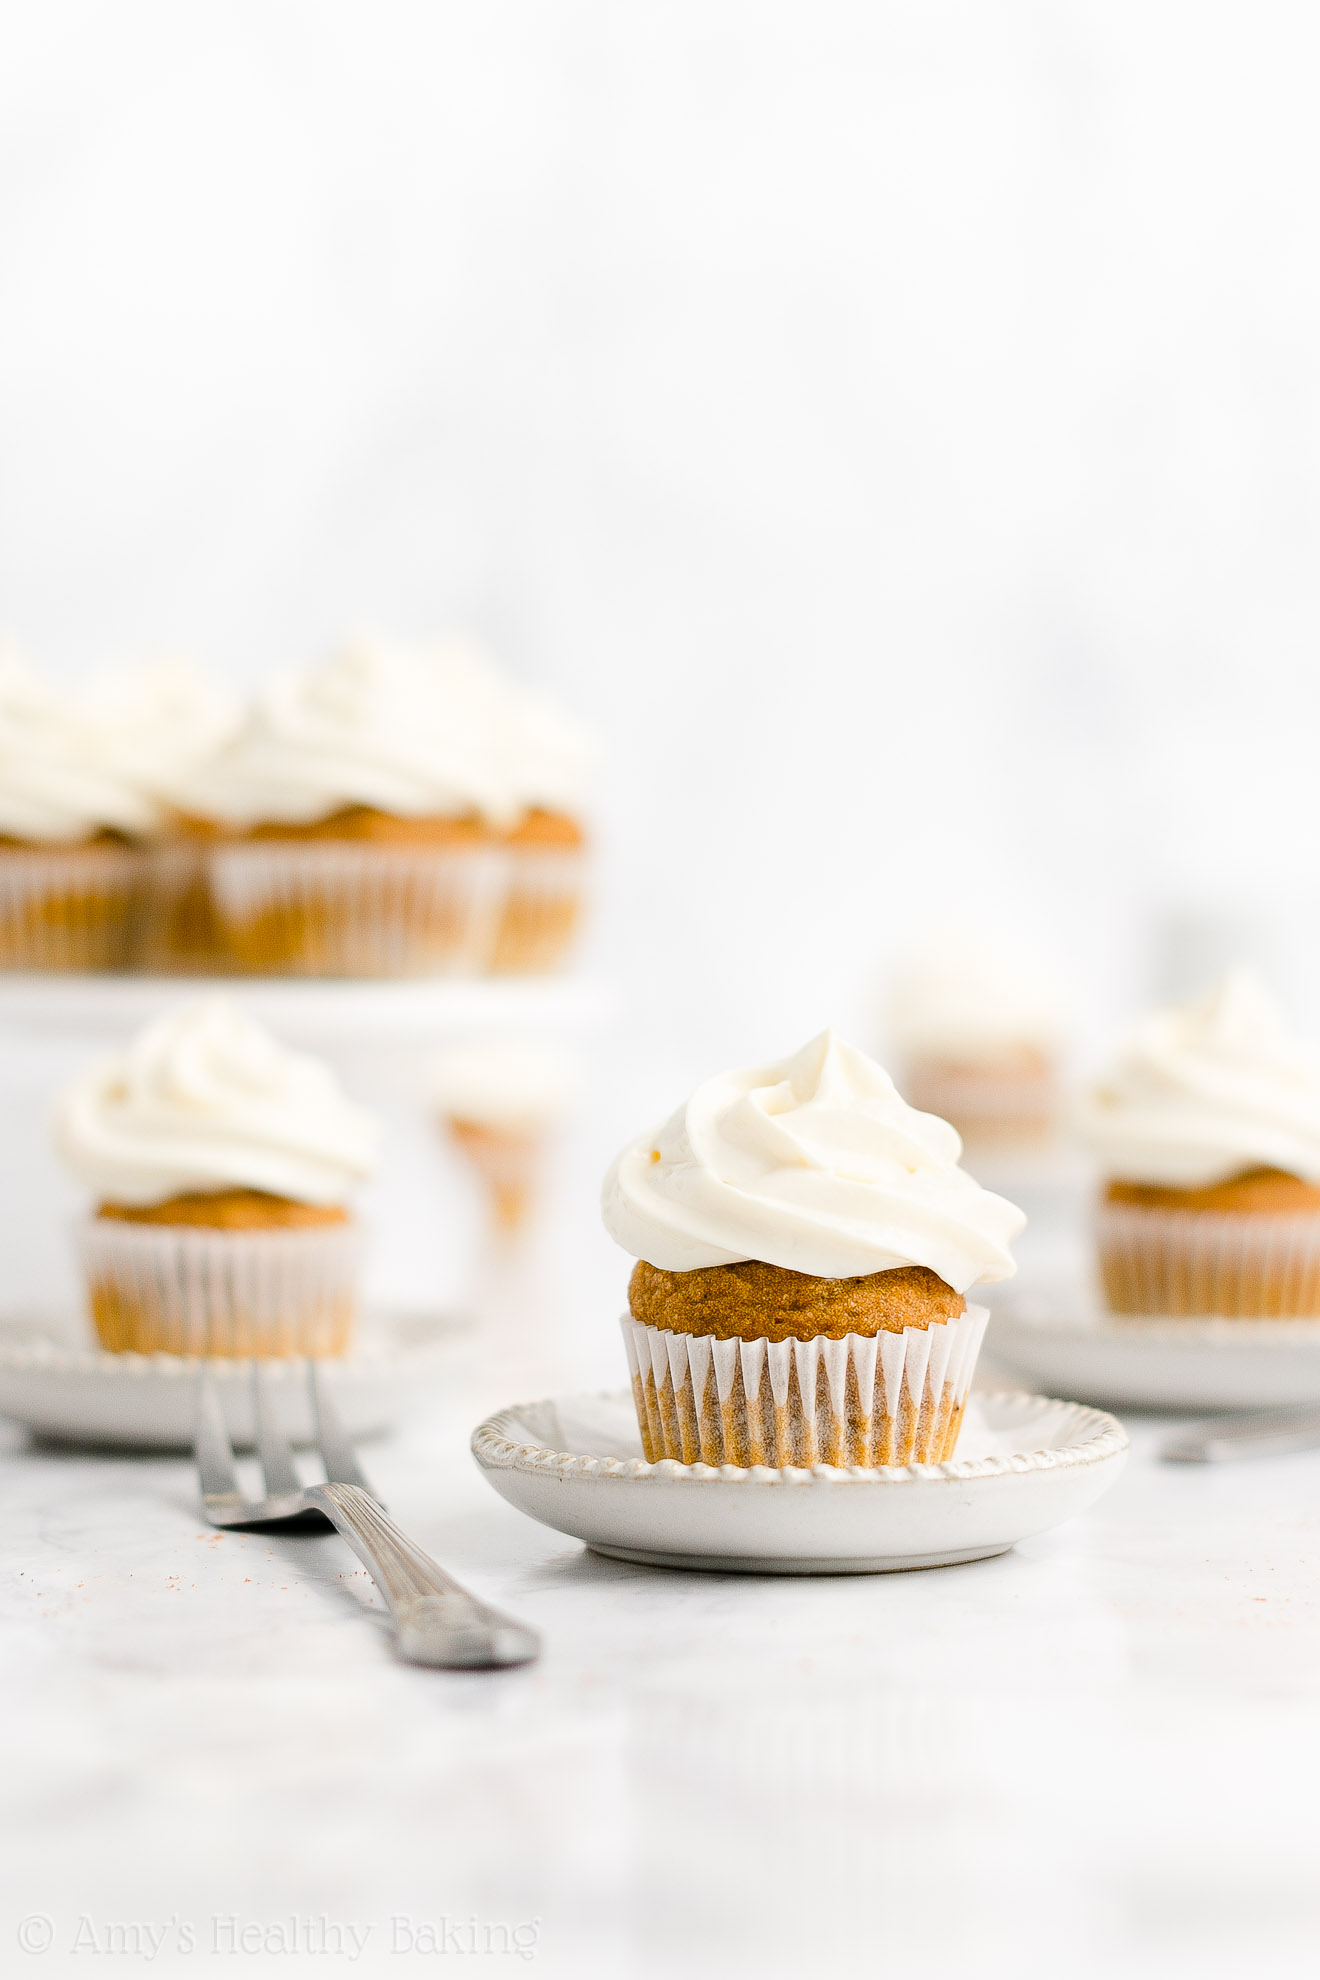 Best Healthy Low Calorie Low Fat Mini Pumpkin Cupcakes + Cream Cheese Frosting